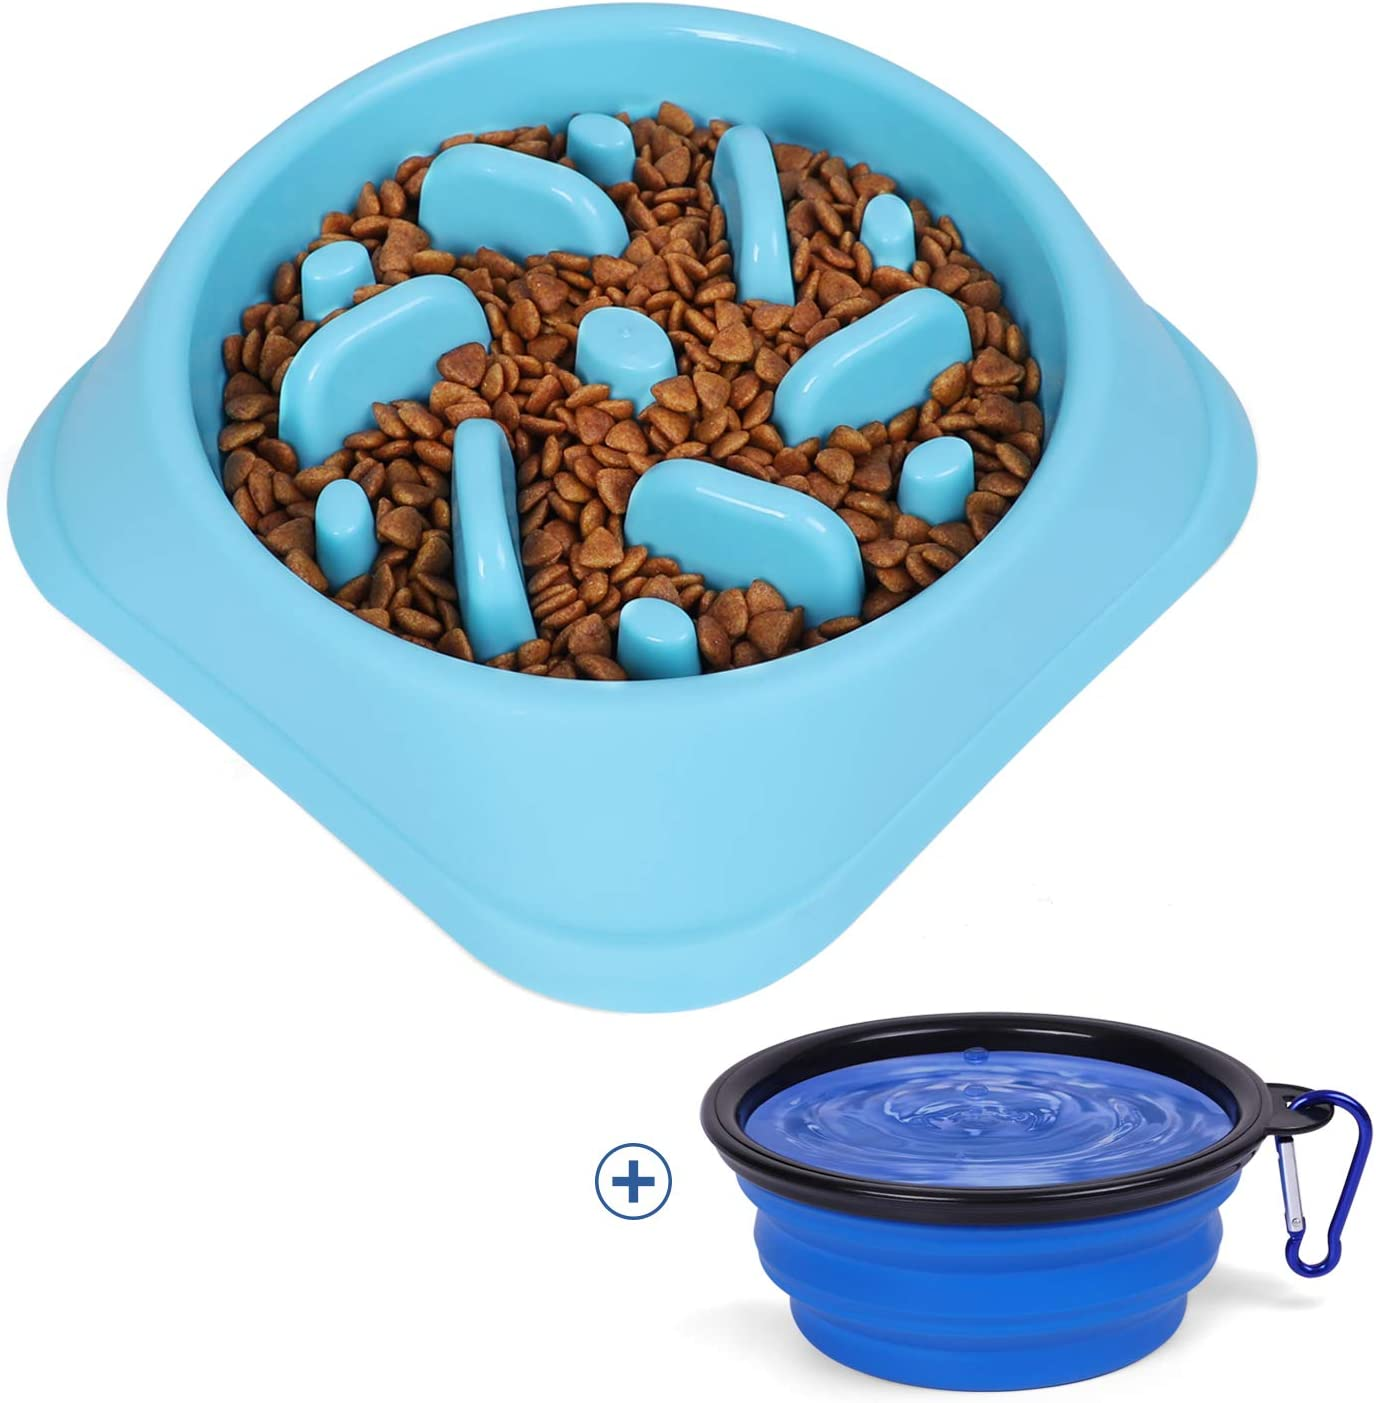 JASGOOD Slow Feeder Dog Bowl with Collapsible Dog Bowl-Puppy Puzzle Dog Food Bowl,Slow Eating Dog Bowl for Medium Dogs